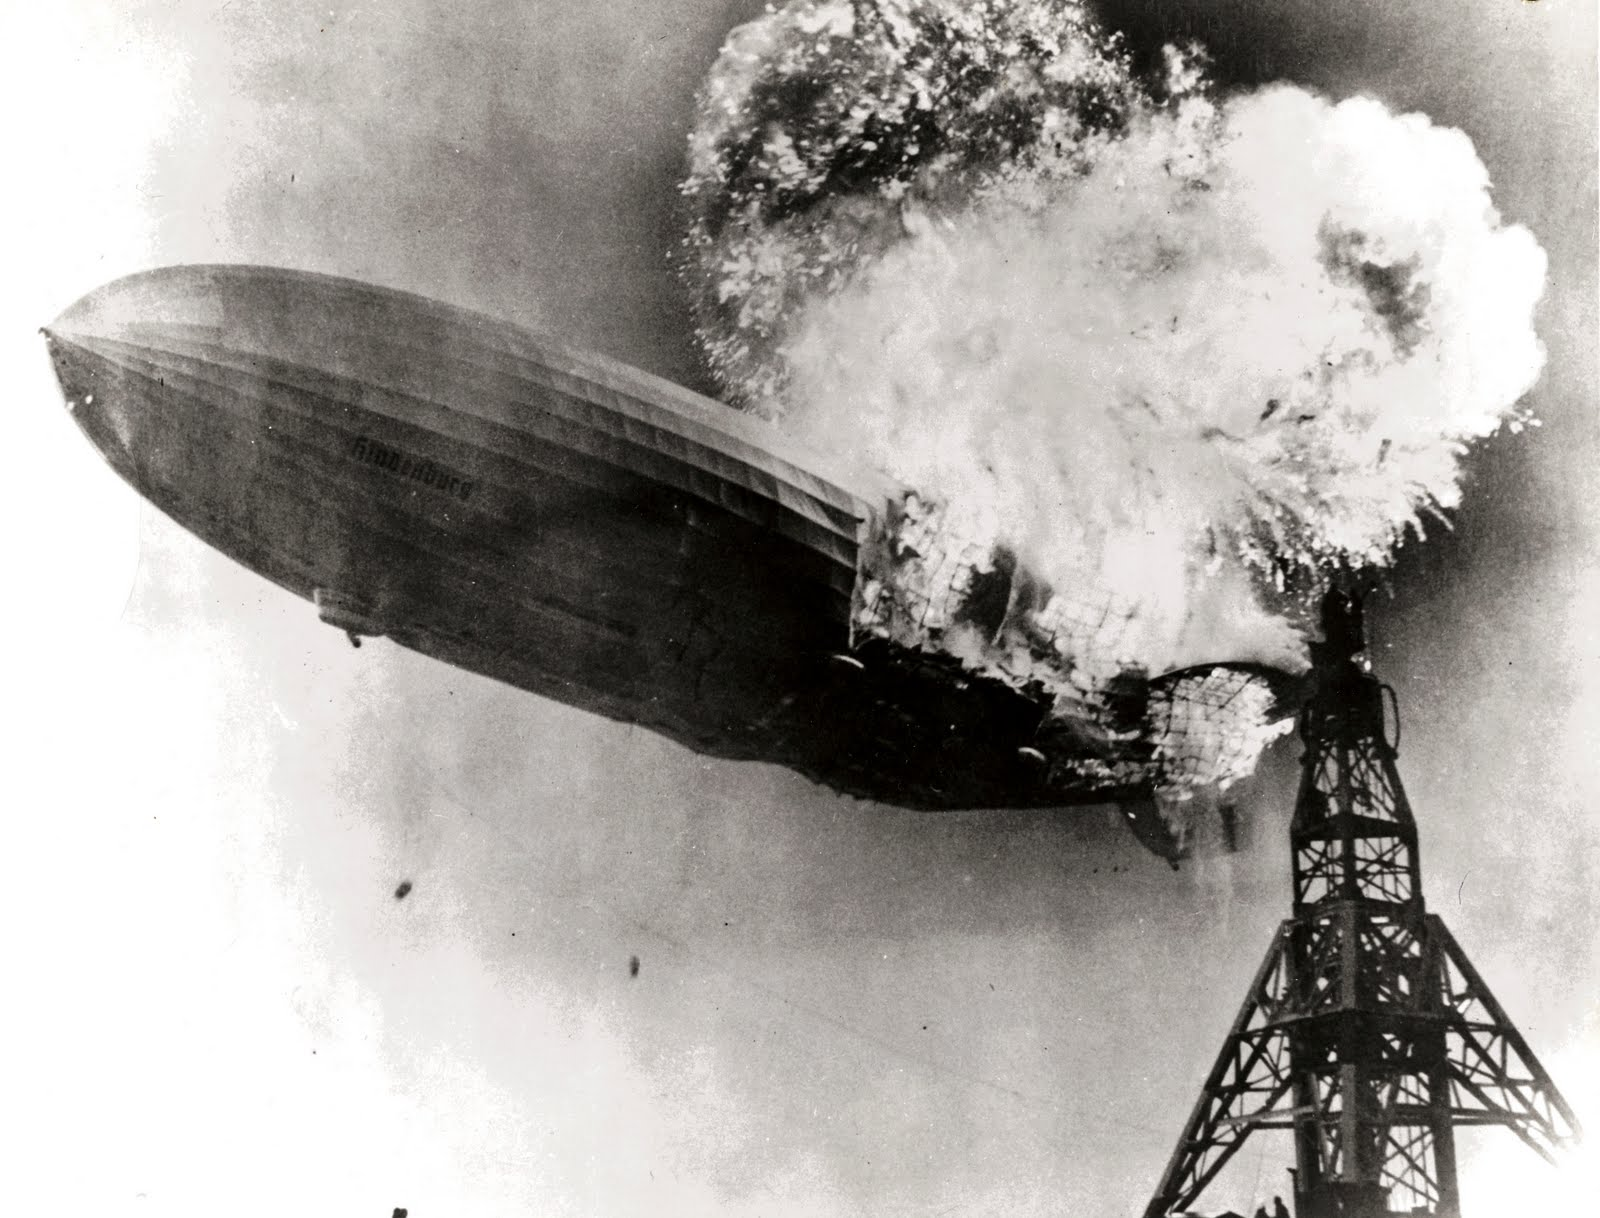 Gus Pasquerella, Hindenburg burning - Lakehurst, U.S.A. (1937) iconic photo air disaster zeppelin foto iconica disastro aereo dirigibile brucia fiamme foito cult cult stories site blog celebre famosa immagine album gas pilone torre